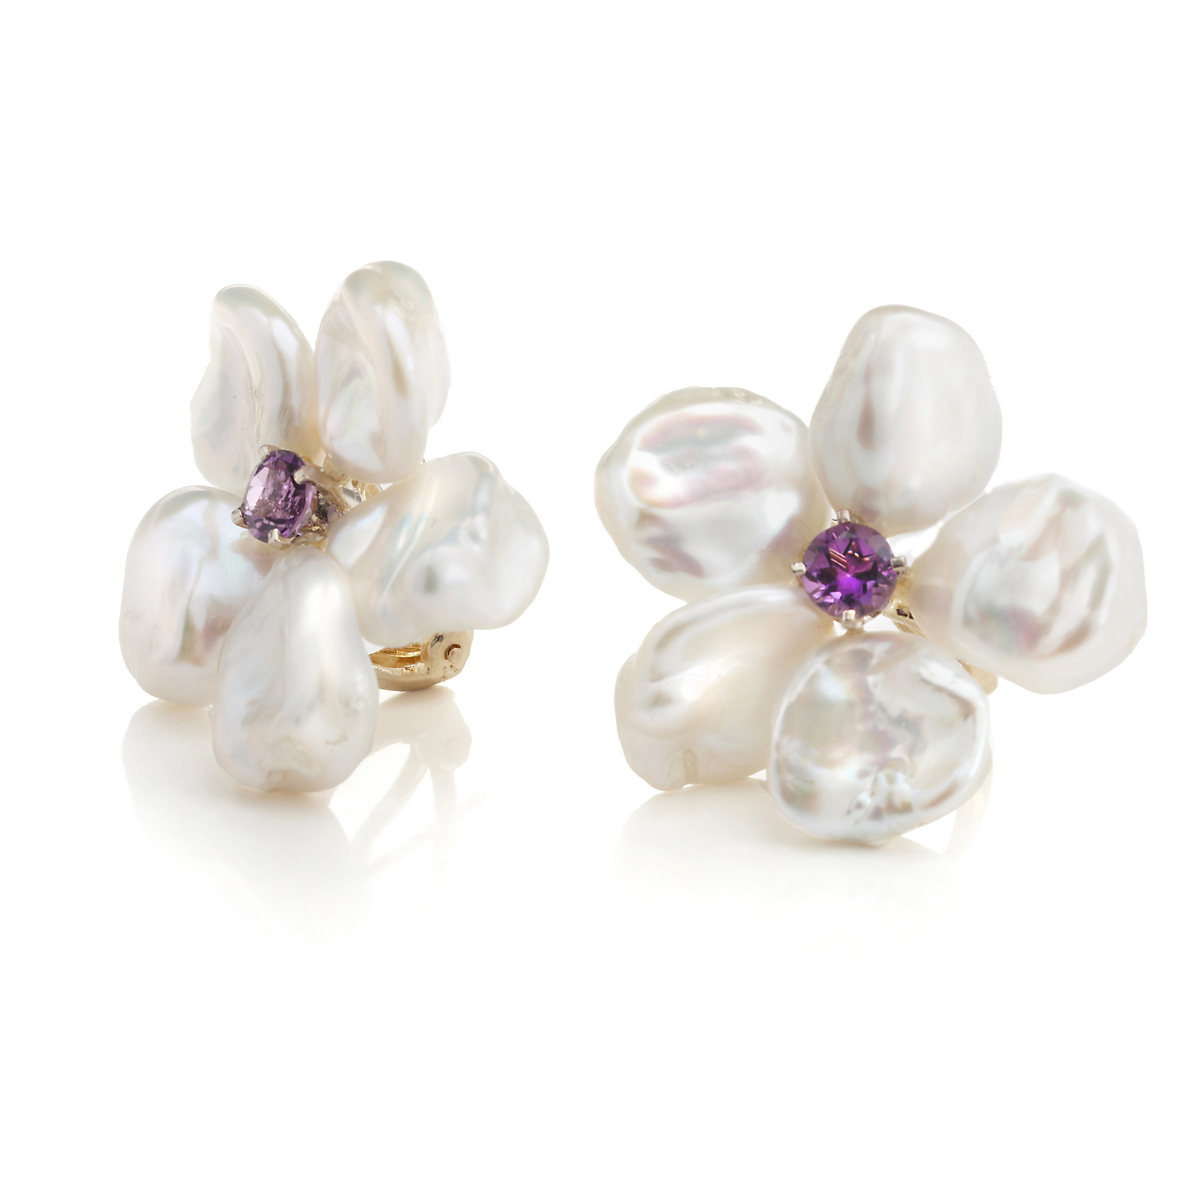 Russell Trusso Pearl & Amethyst Flower Earrings